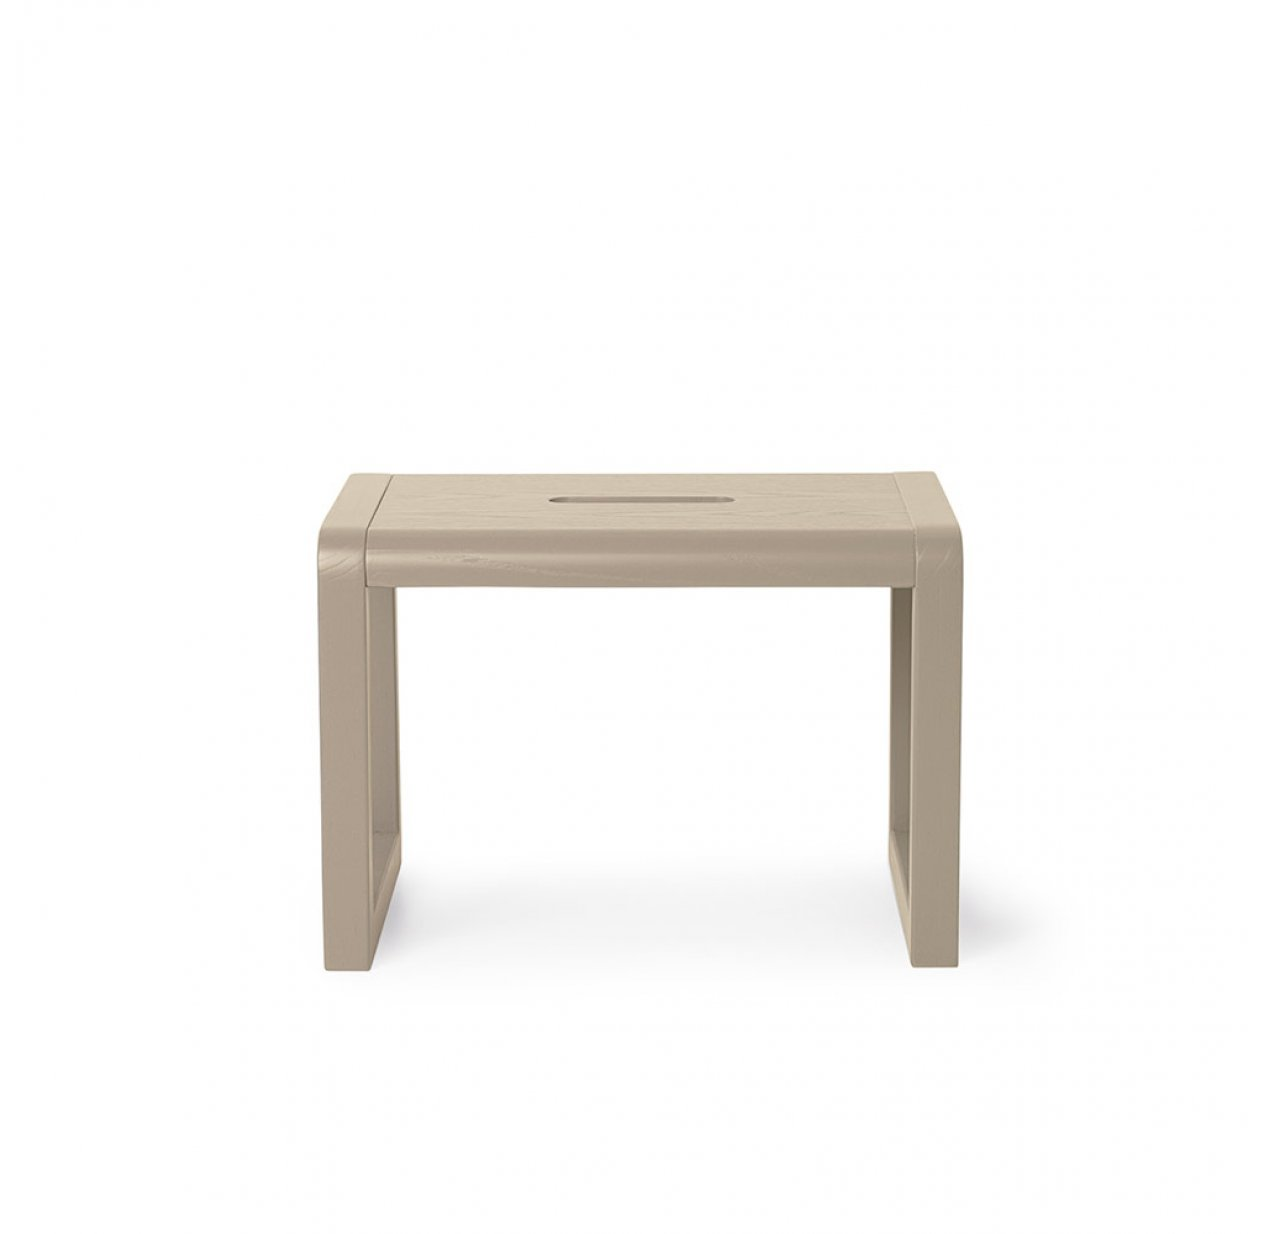 Tabouret Little Architect - Cachemire